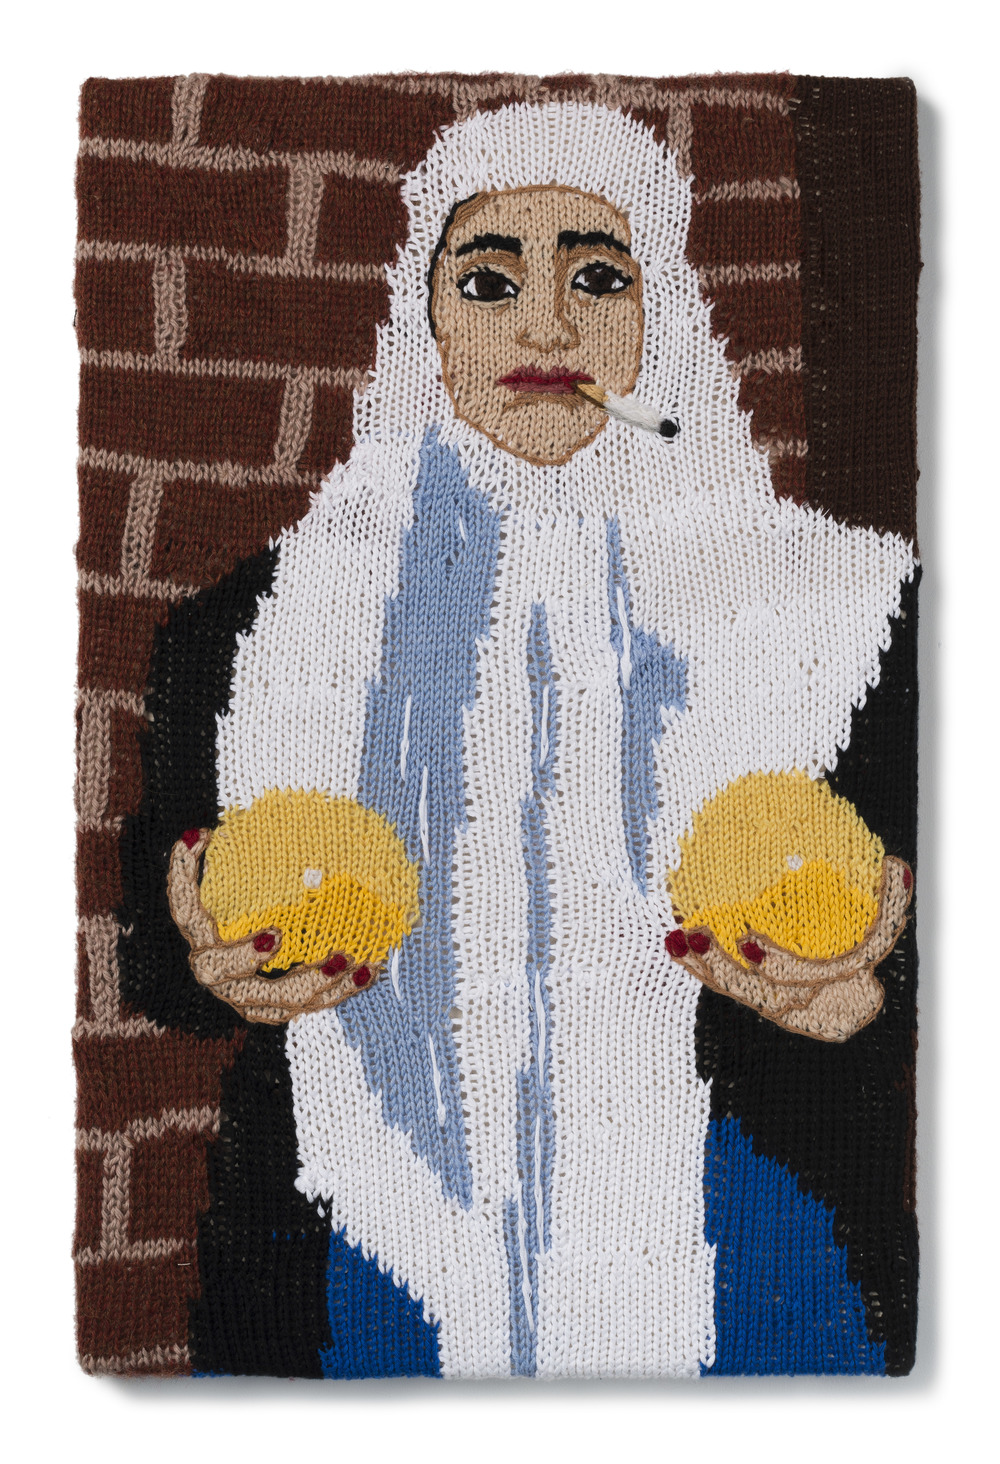 "Kate Just, Feminist Fan #22 (Sarah Maple, Self Portrait with Melons, 2012), 2016         Normal   0           false   false   false     EN-AU   JA   X-NONE                                                                                                                                                                                                                                                                                                                                                                           /* Style Definitions */  table.MsoNormalTable 	{mso-style-name:""Table Normal""; 	mso-tstyle-rowband-size:0; 	mso-tstyle-colband-size:0; 	mso-style-noshow:yes; 	mso-style-priority:99; 	mso-style-parent:""""; 	mso-padding-alt:0in 5.4pt 0in 5.4pt; 	mso-para-margin-top:0in; 	mso-para-margin-right:0in; 	mso-para-margin-bottom:10.0pt; 	mso-para-margin-left:0in; 	line-height:115%; 	mso-pagination:widow-orphan; 	font-size:11.0pt; 	font-family:""Calibri"",""sans-serif""; 	mso-ascii-font-family:Calibri; 	mso-ascii-theme-font:minor-latin; 	mso-hansi-font-family:Calibri; 	mso-hansi-theme-font:minor-latin; 	mso-fareast-language:EN-US;}"